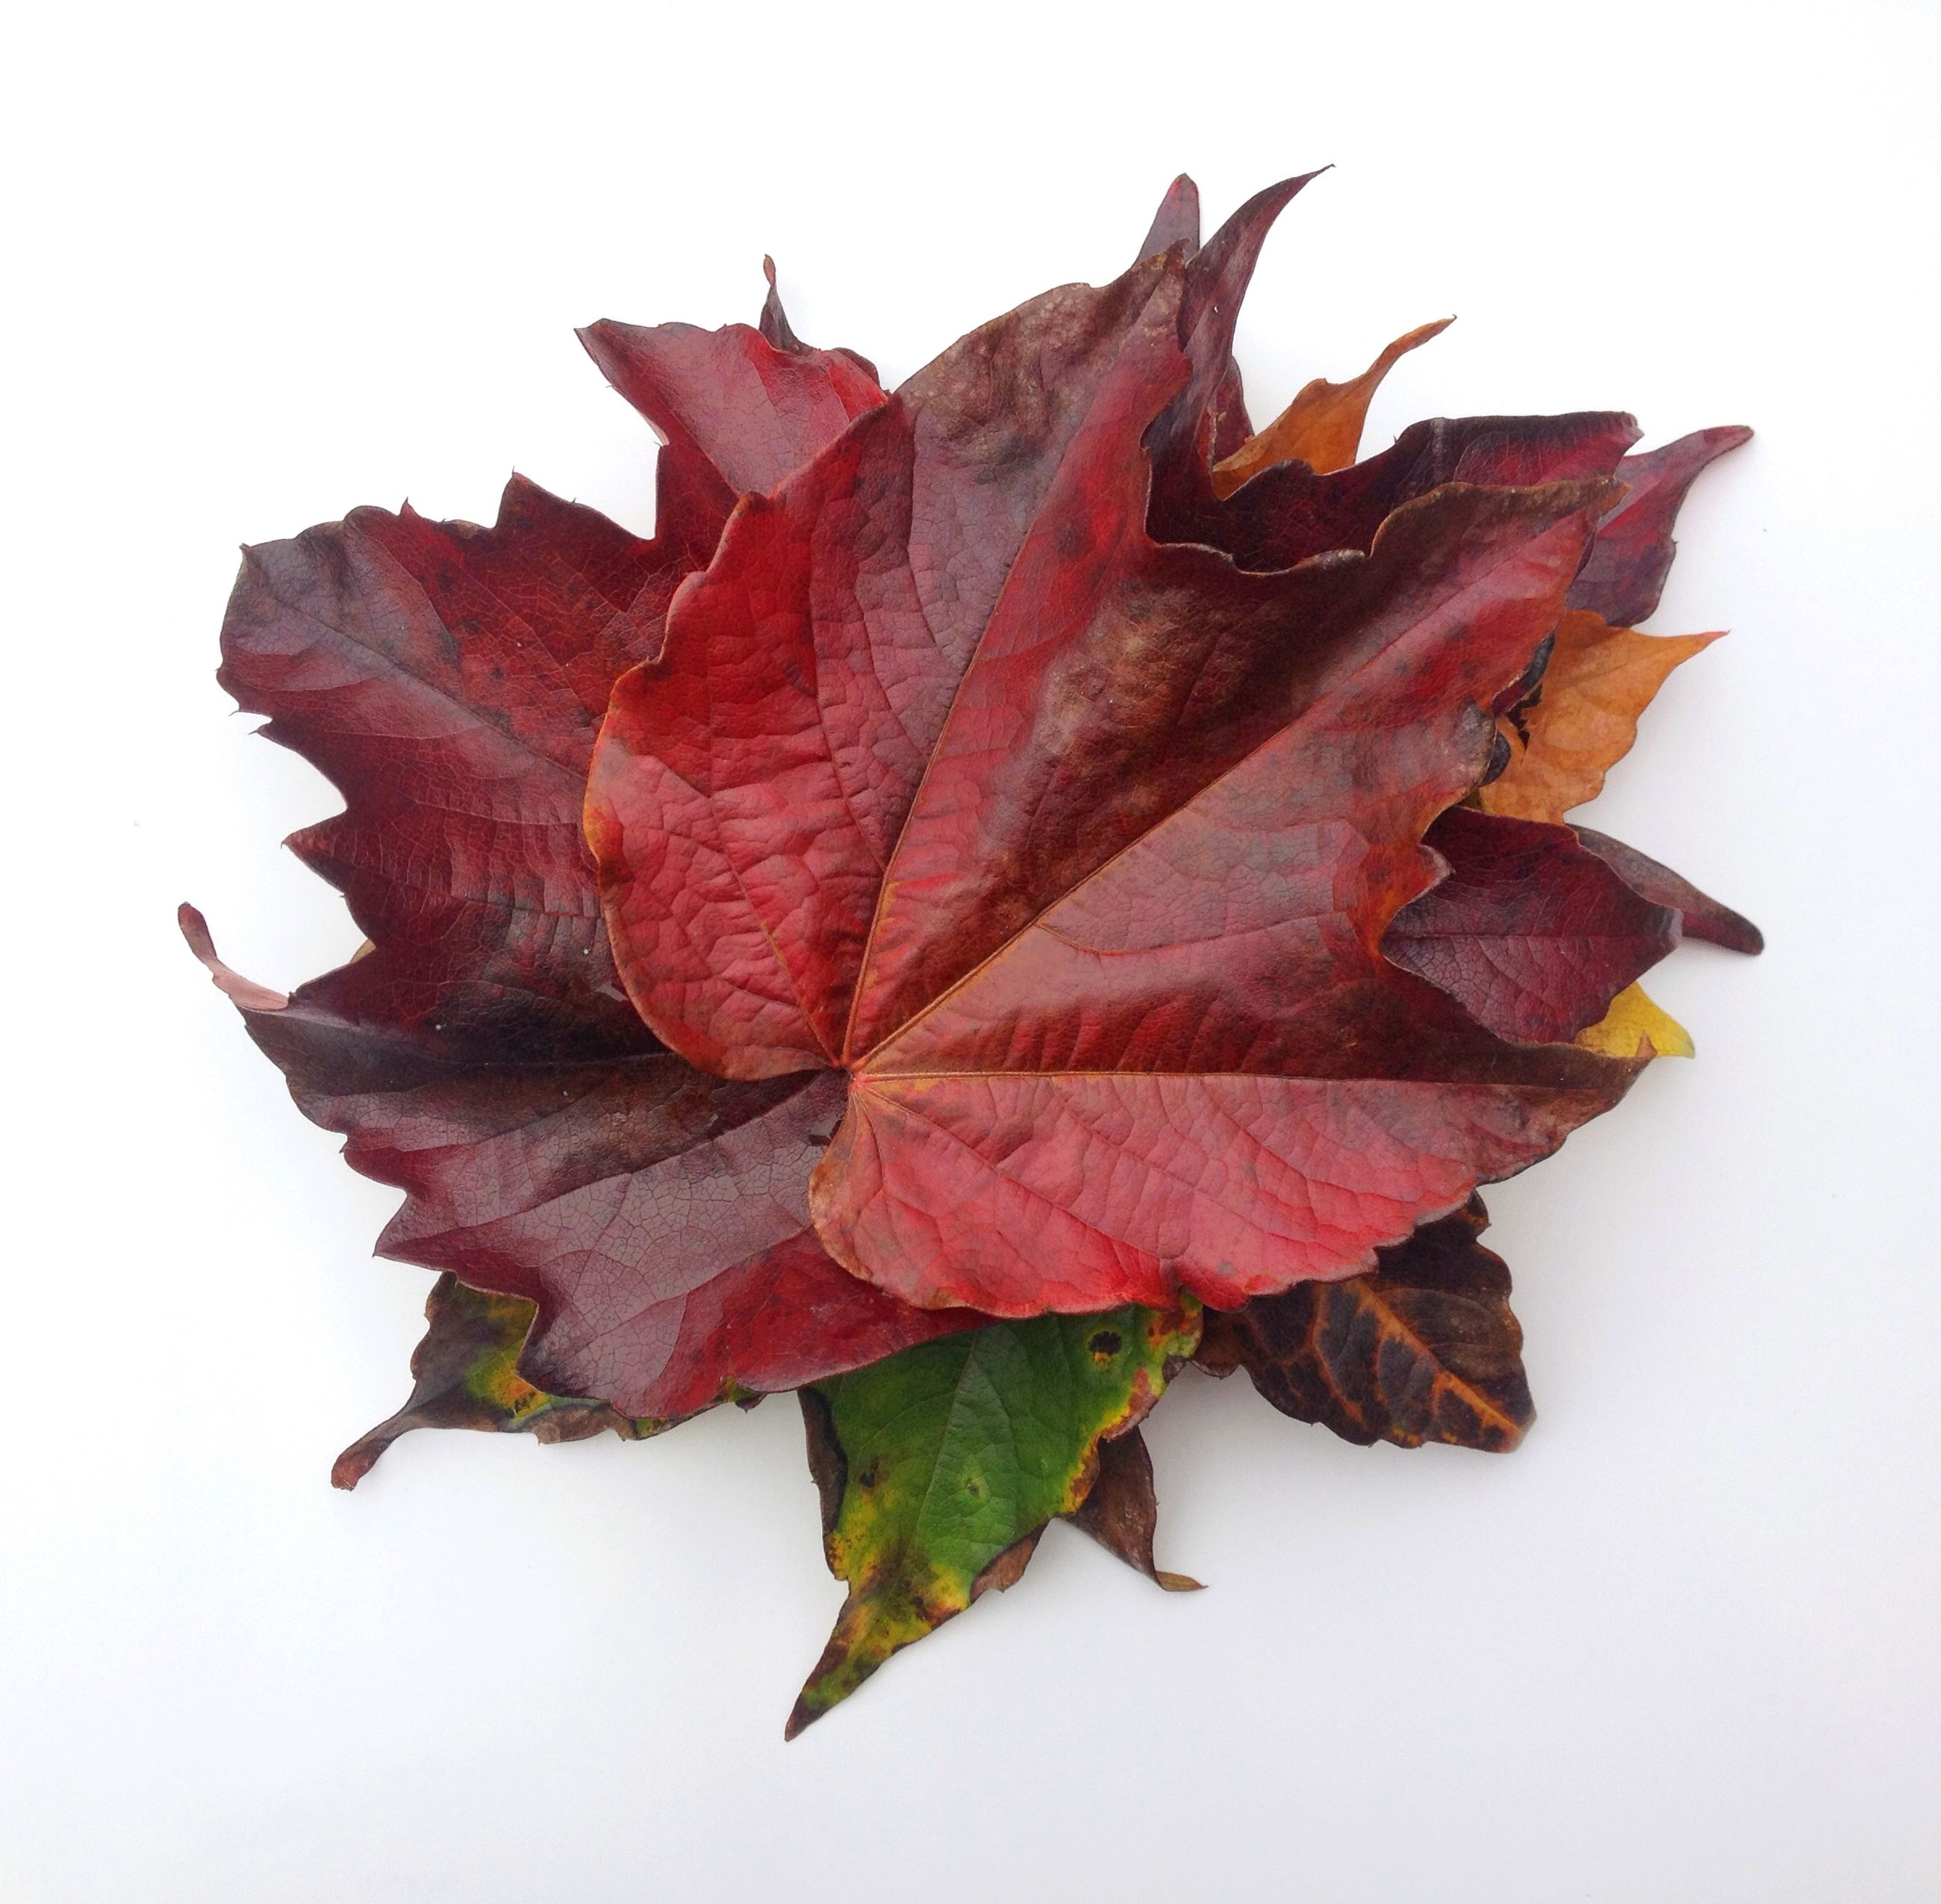 leaf, autumn, leaf vein, change, dry, close-up, leaves, season, maple leaf, aging process, natural pattern, studio shot, nature, white background, fragility, red, brown, no people, single object, still life